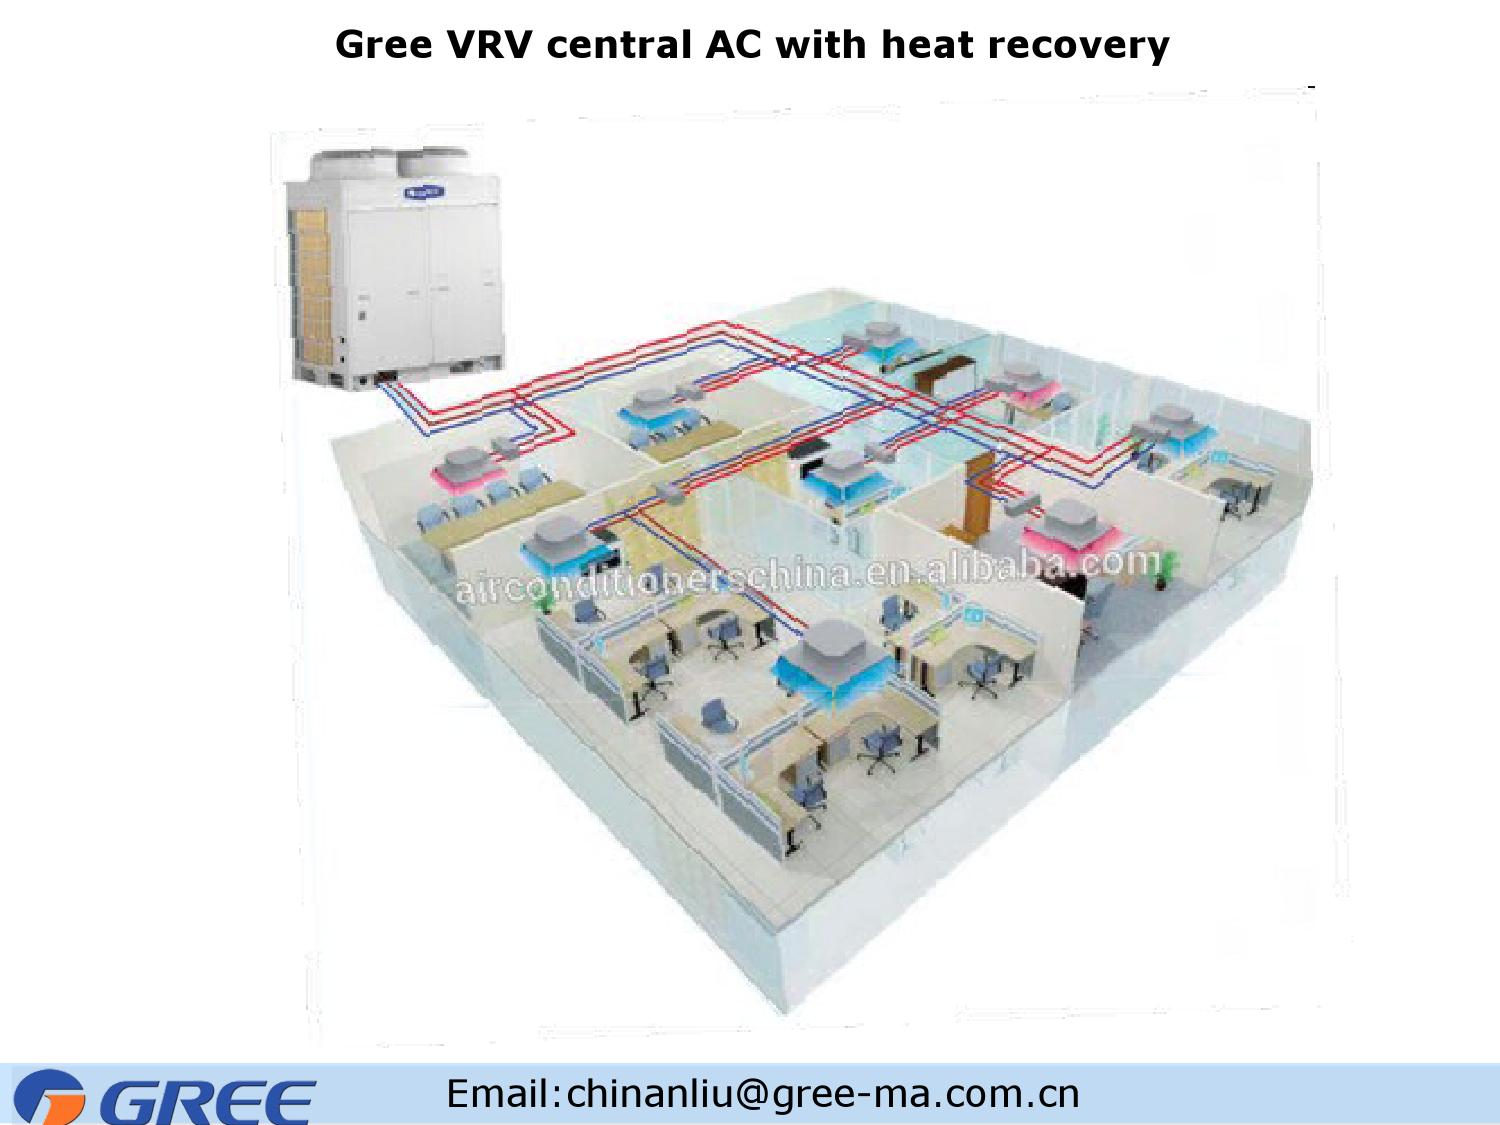 Gree Vrv Central Ac With Heat Recovery By Gree Issuu